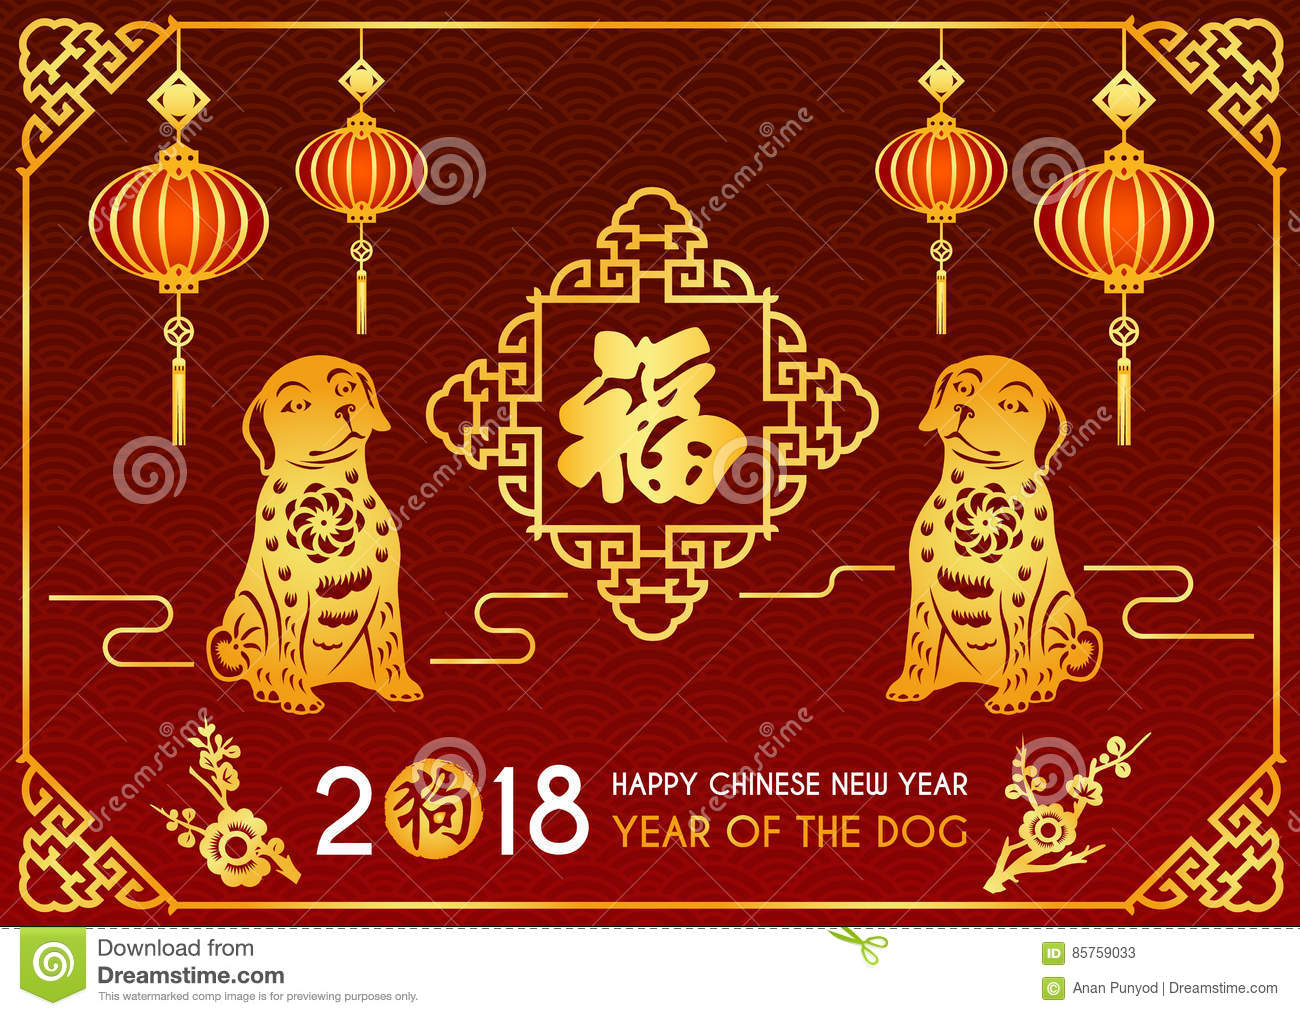 Happy chinese new year 2018 card is lanterns 2 gold dog and happy chinese new year 2018 card is lanterns 2 gold dog and chinese word mean blessing in frame and chinese word mean dog in n kristyandbryce Choice Image